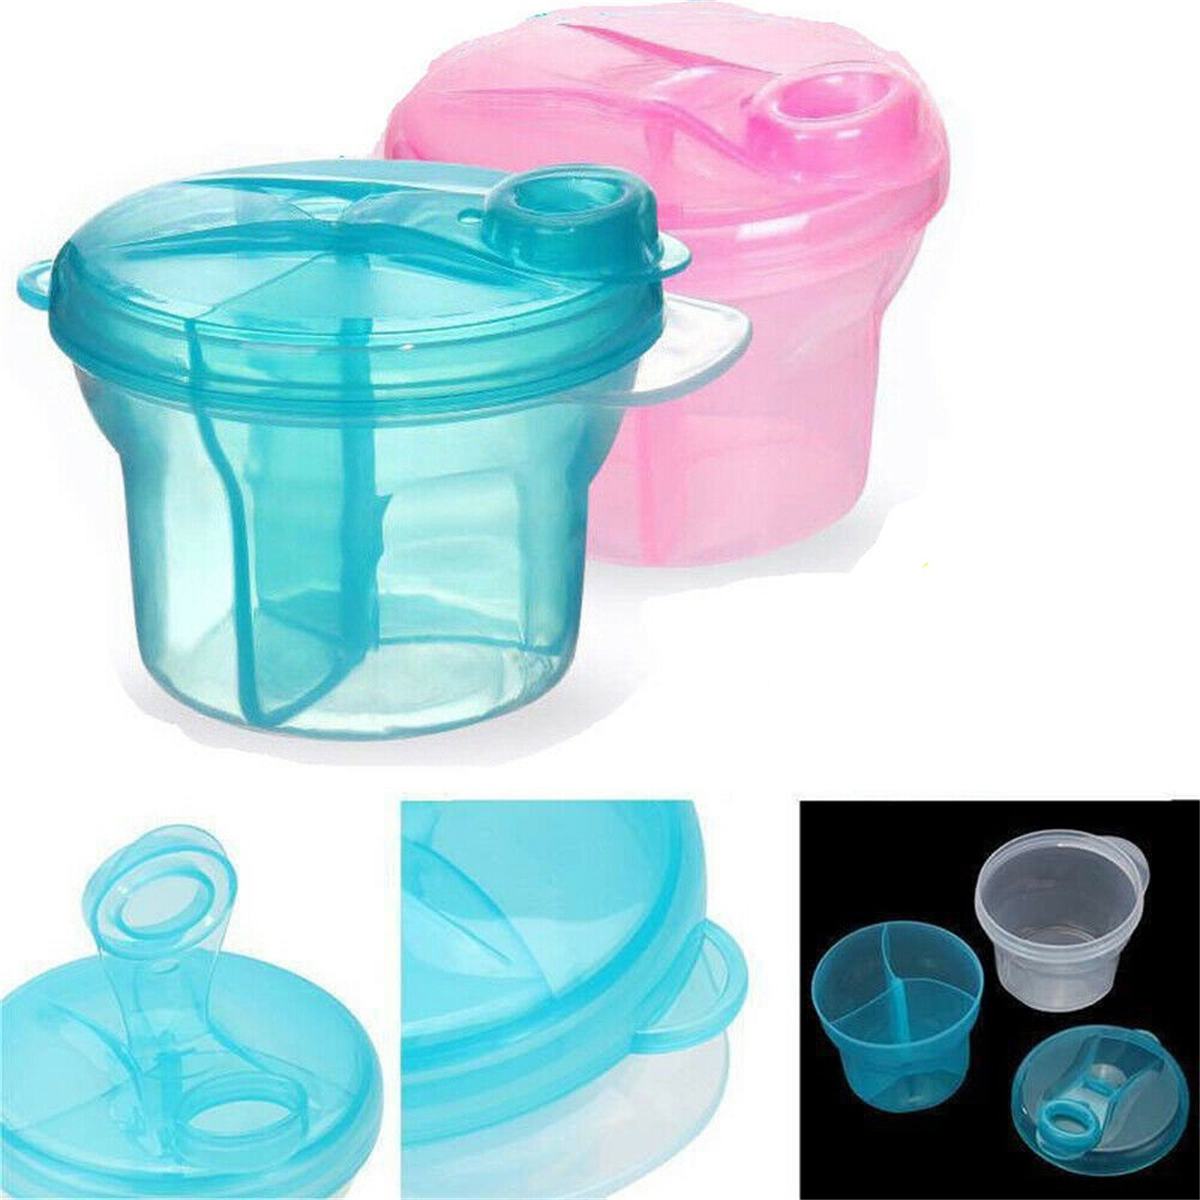 Baby Anti-Spill Snack Candy Bowl Cup Milk Water Container Dispenser BPA Free